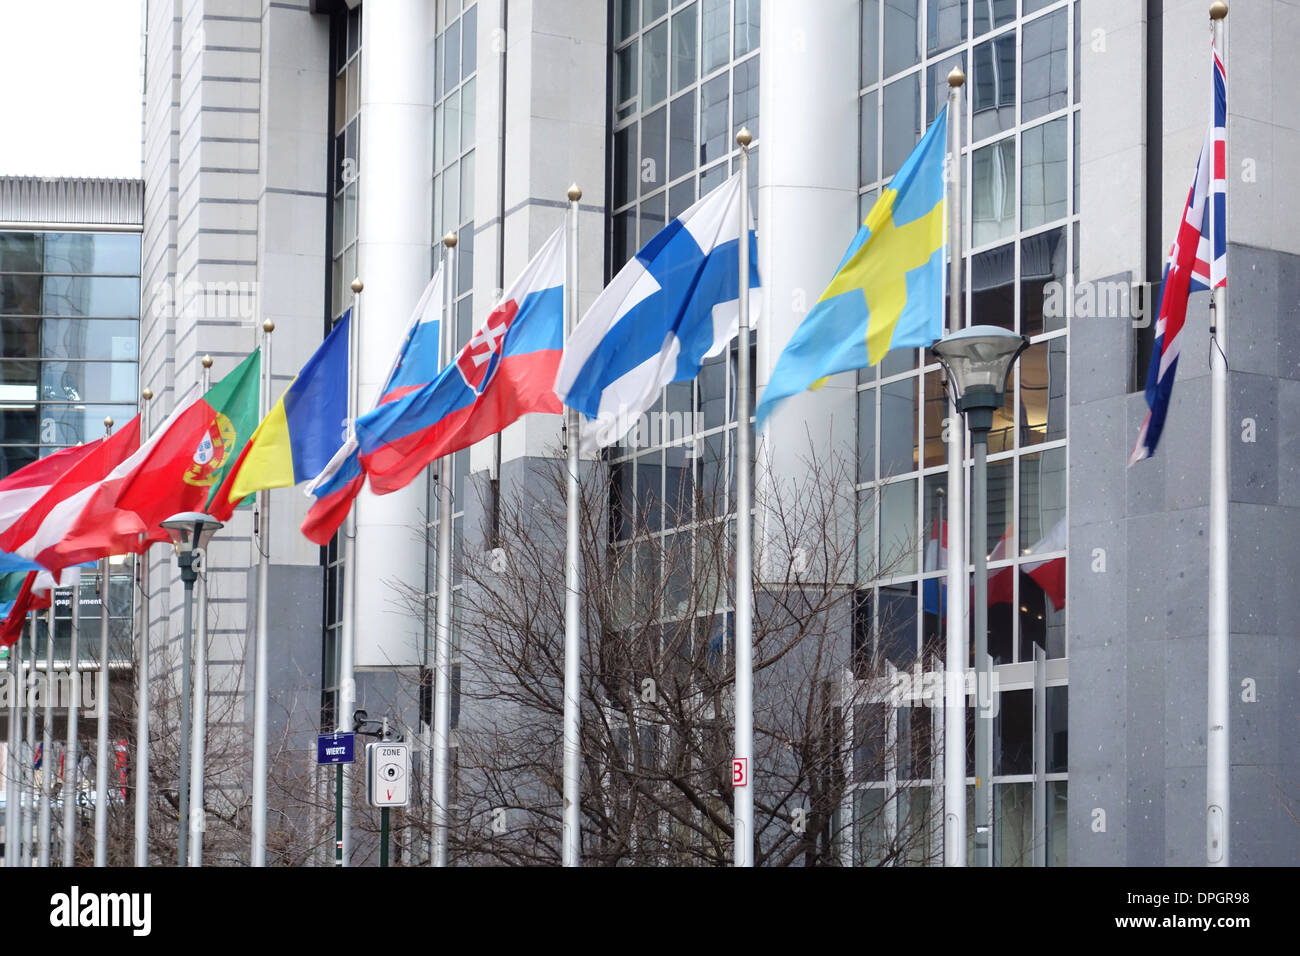 EU flags flying, in front of the European Parliament buildings in Brussels, Belgium. - Stock Image